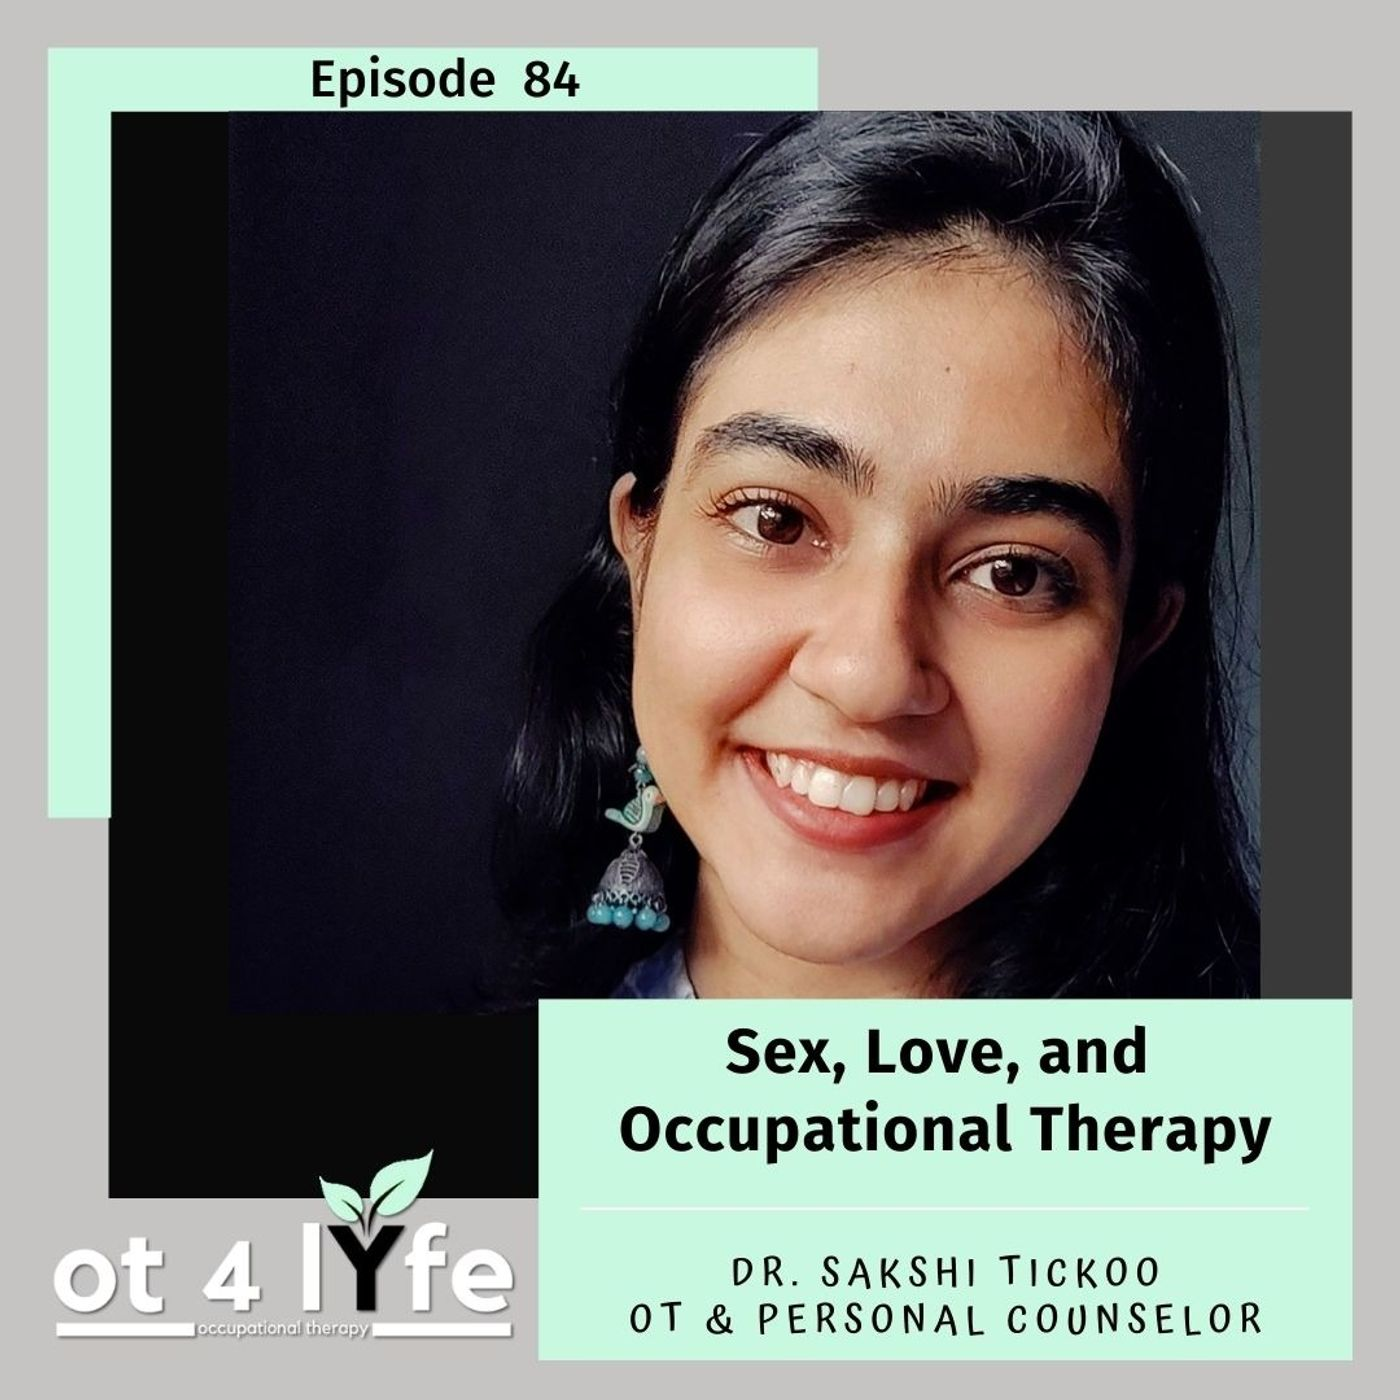 Sex, Love, and Occupational Therapy with Sakshi Tickoo